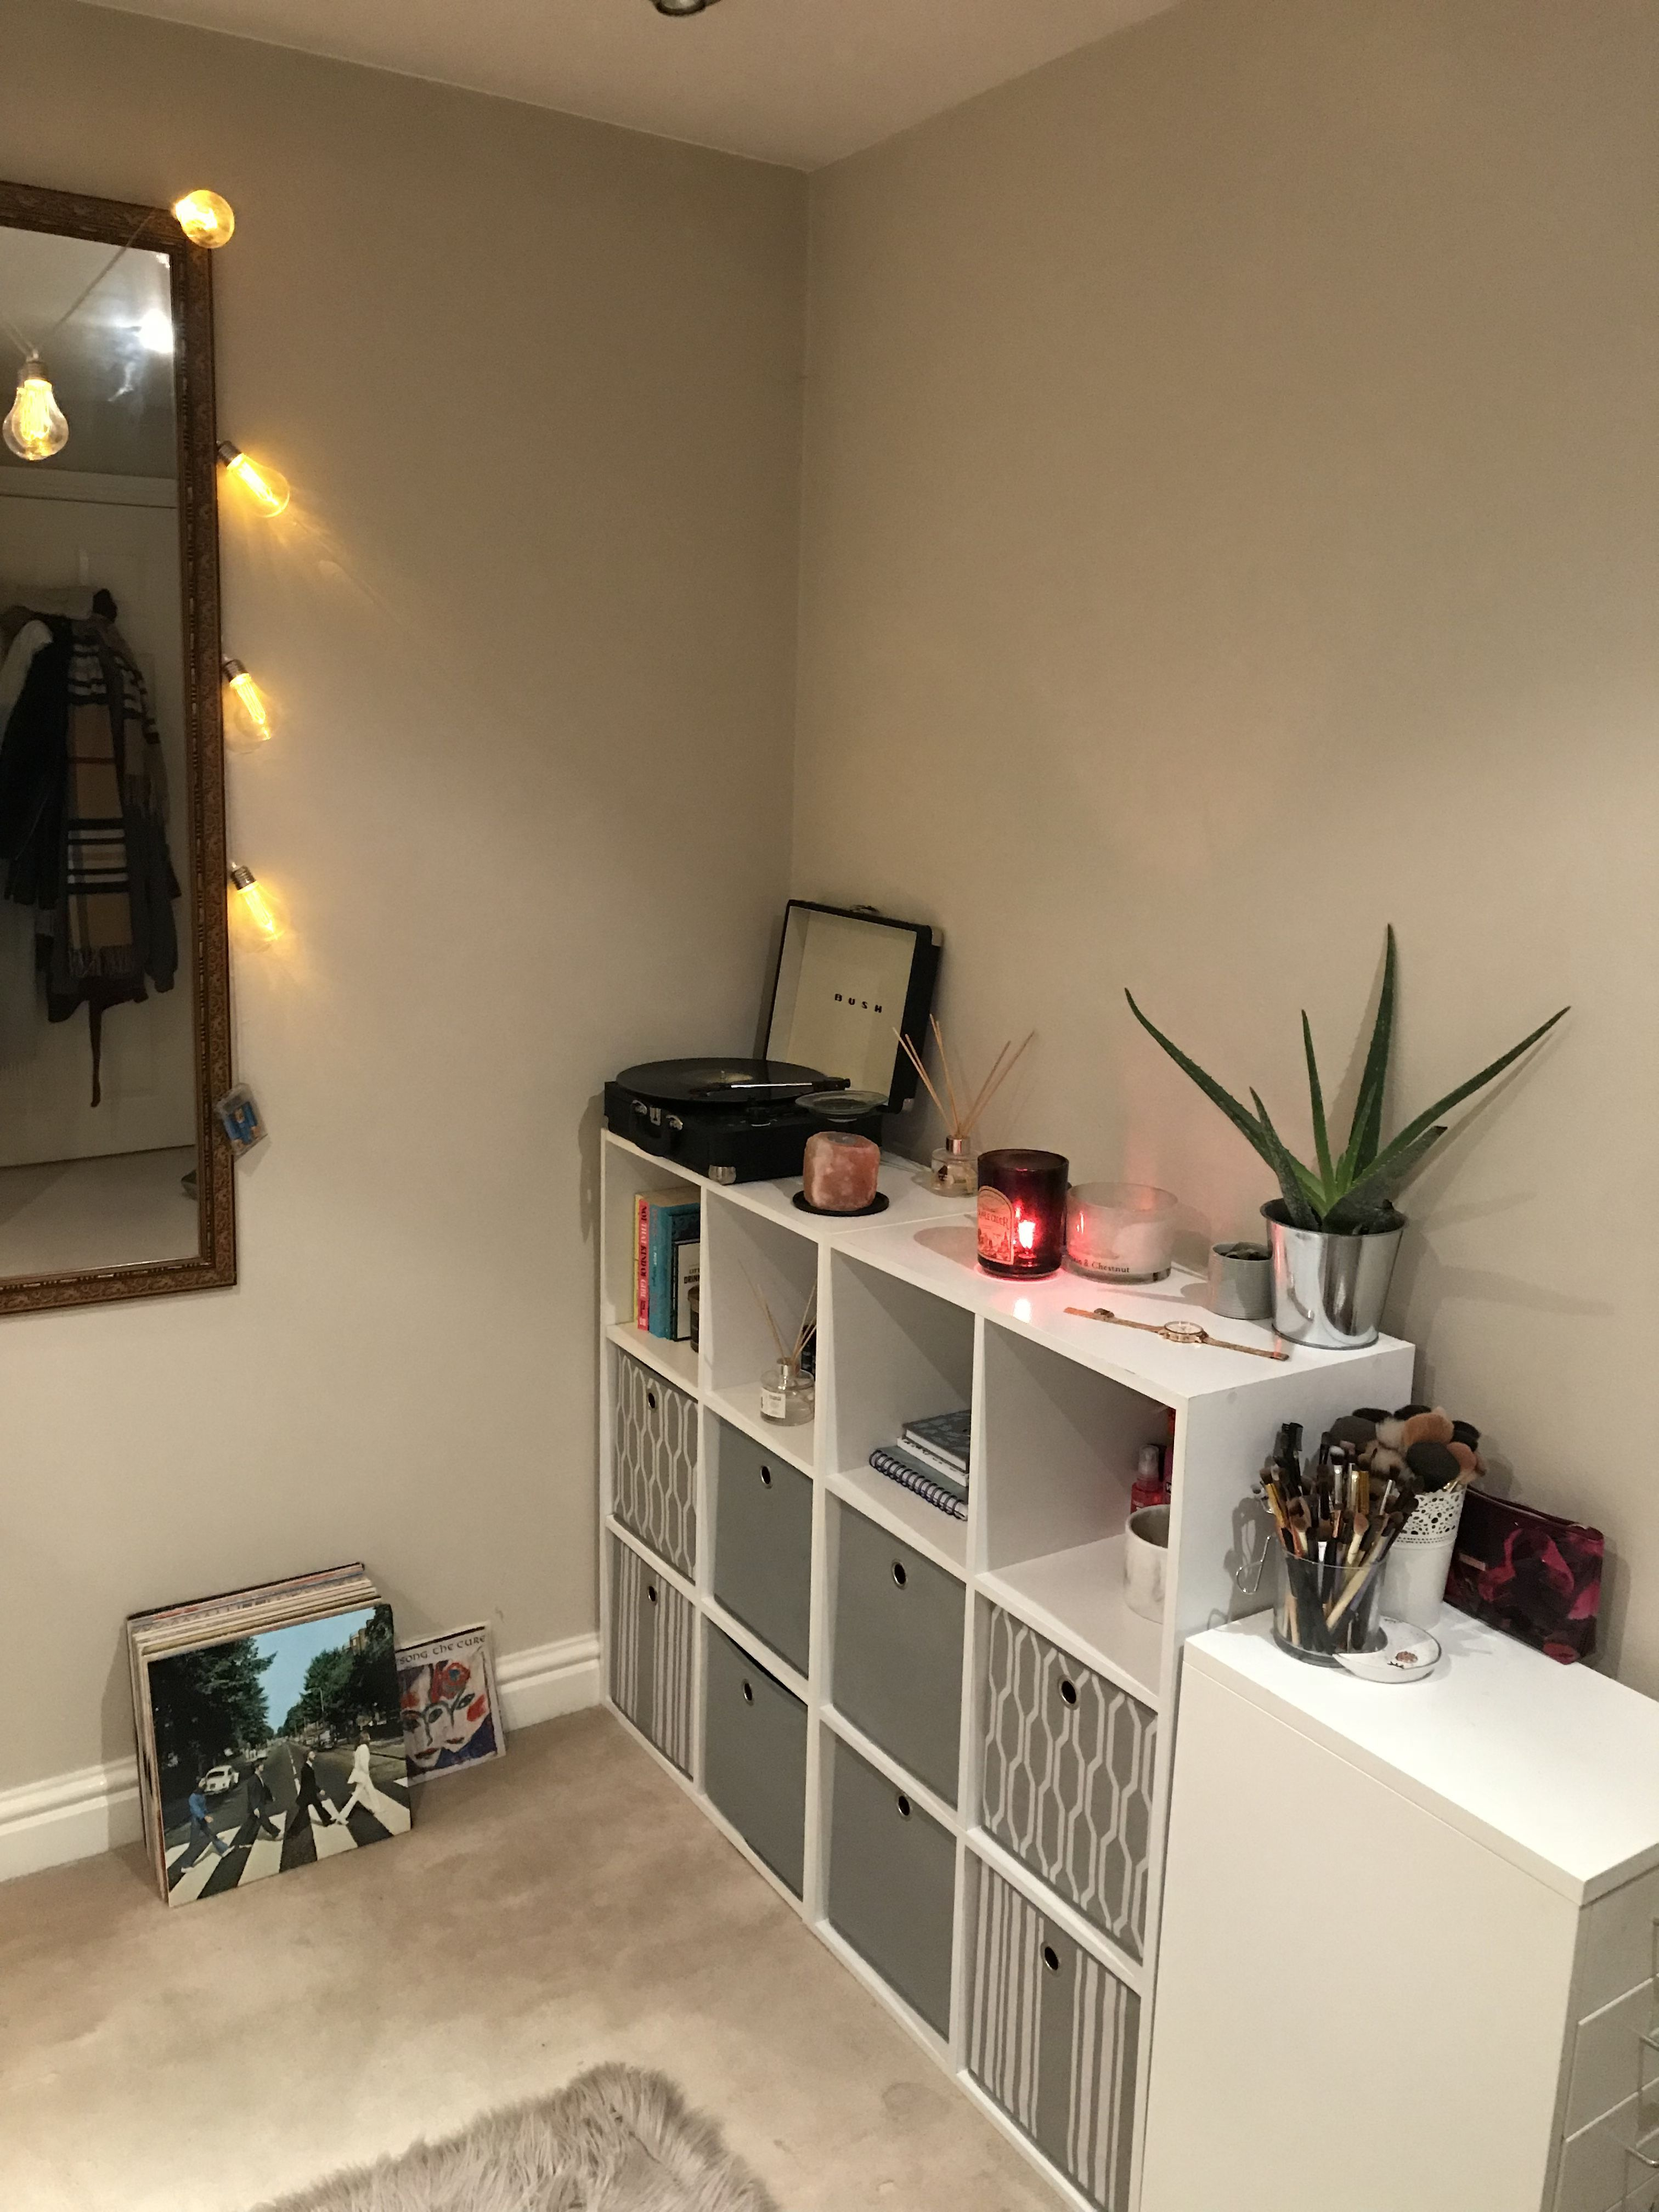 Bedroom Overhaul Record Player And Storage Units Https Www